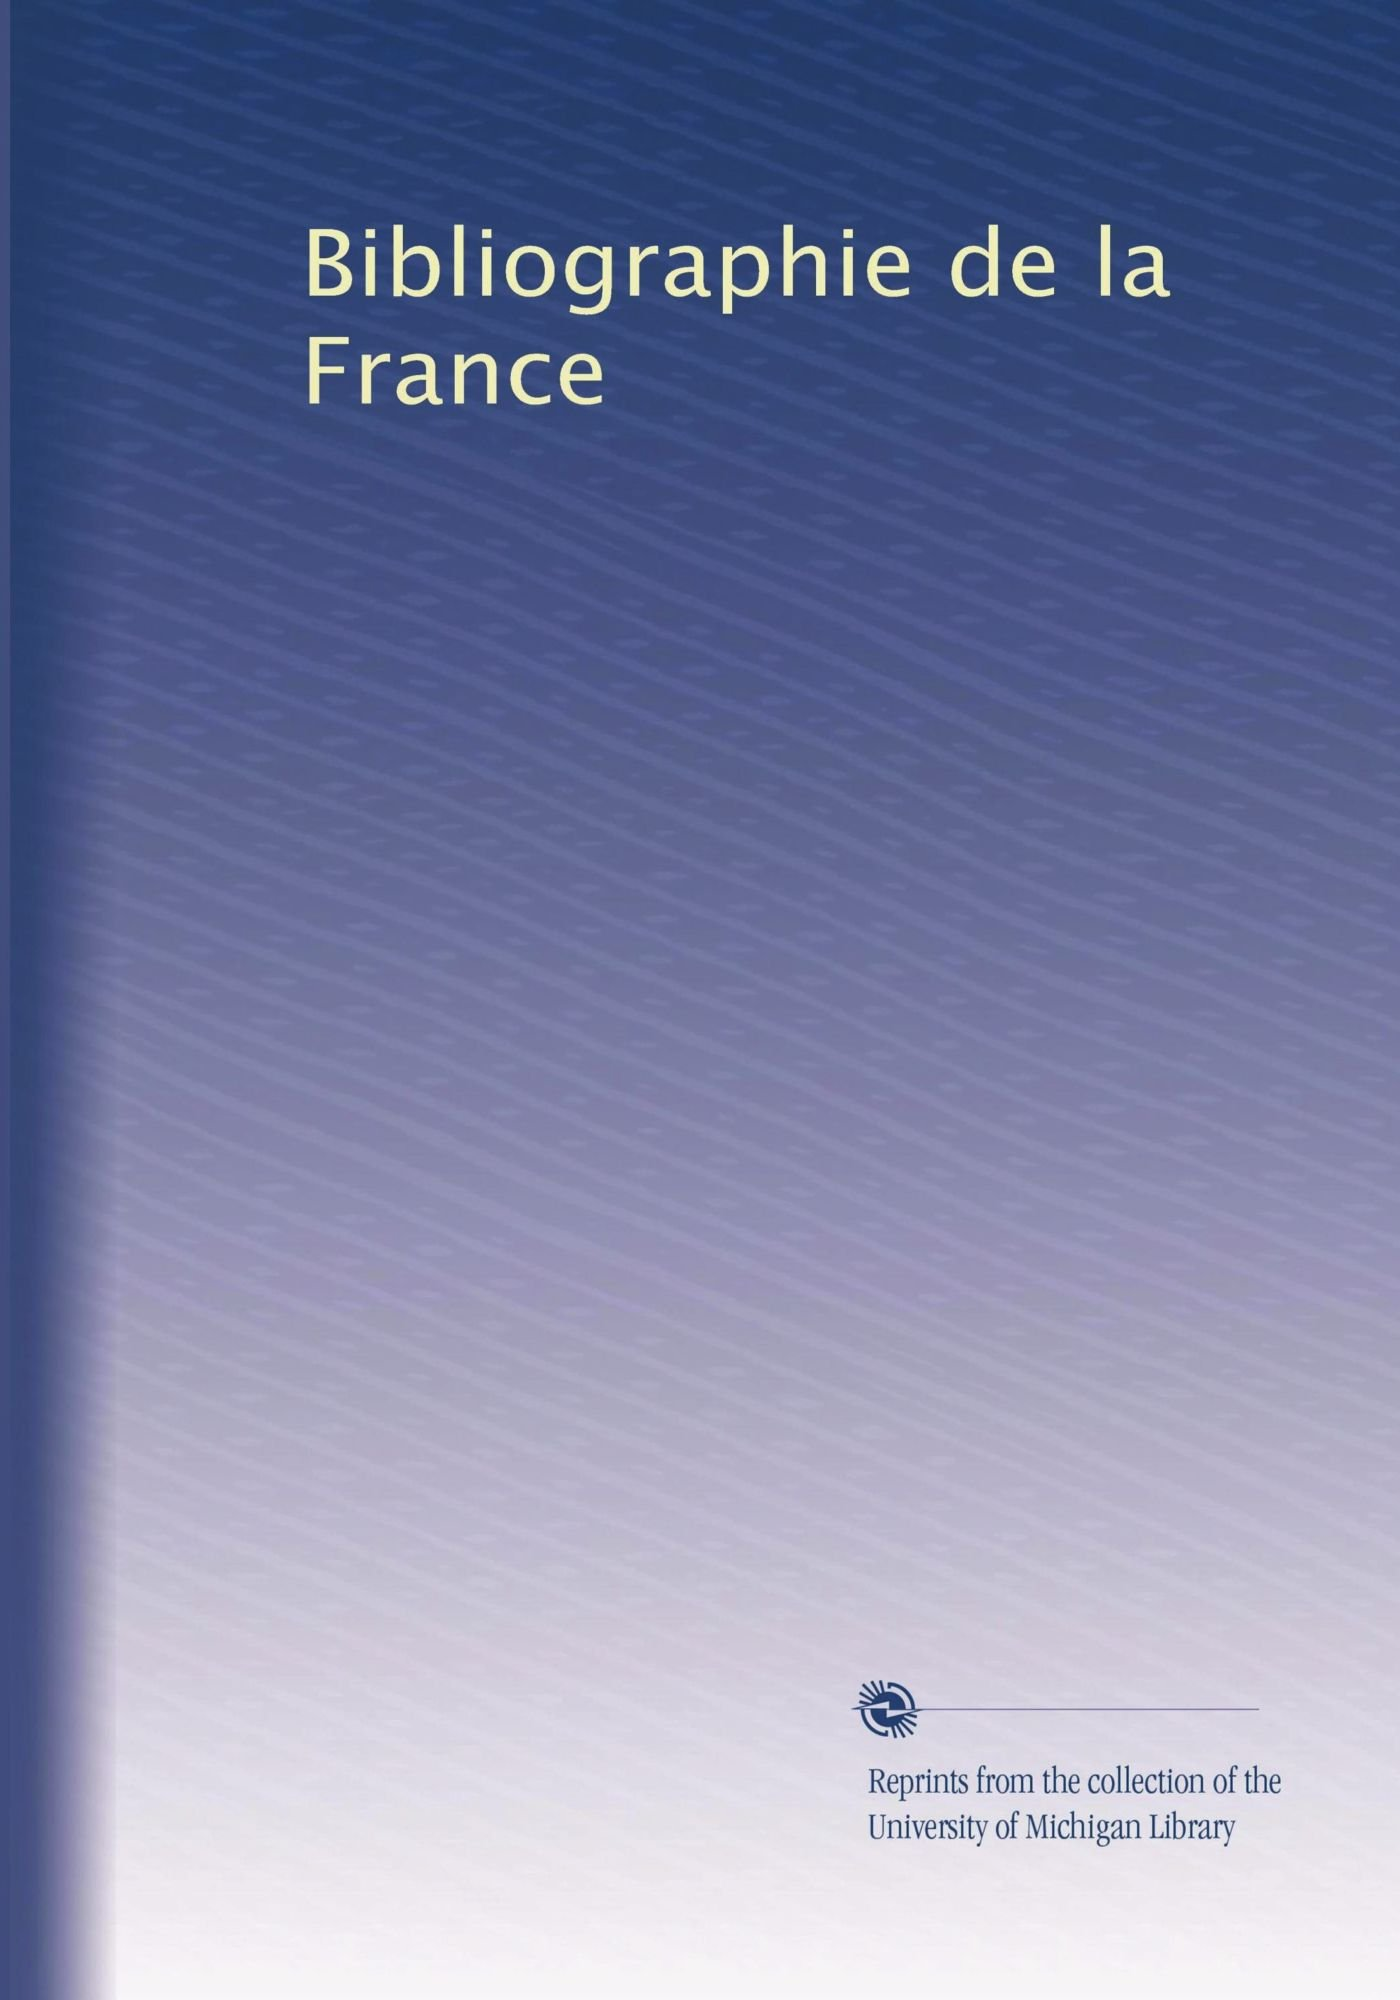 Download Bibliographie de la France (Volume 34) (French Edition) ebook